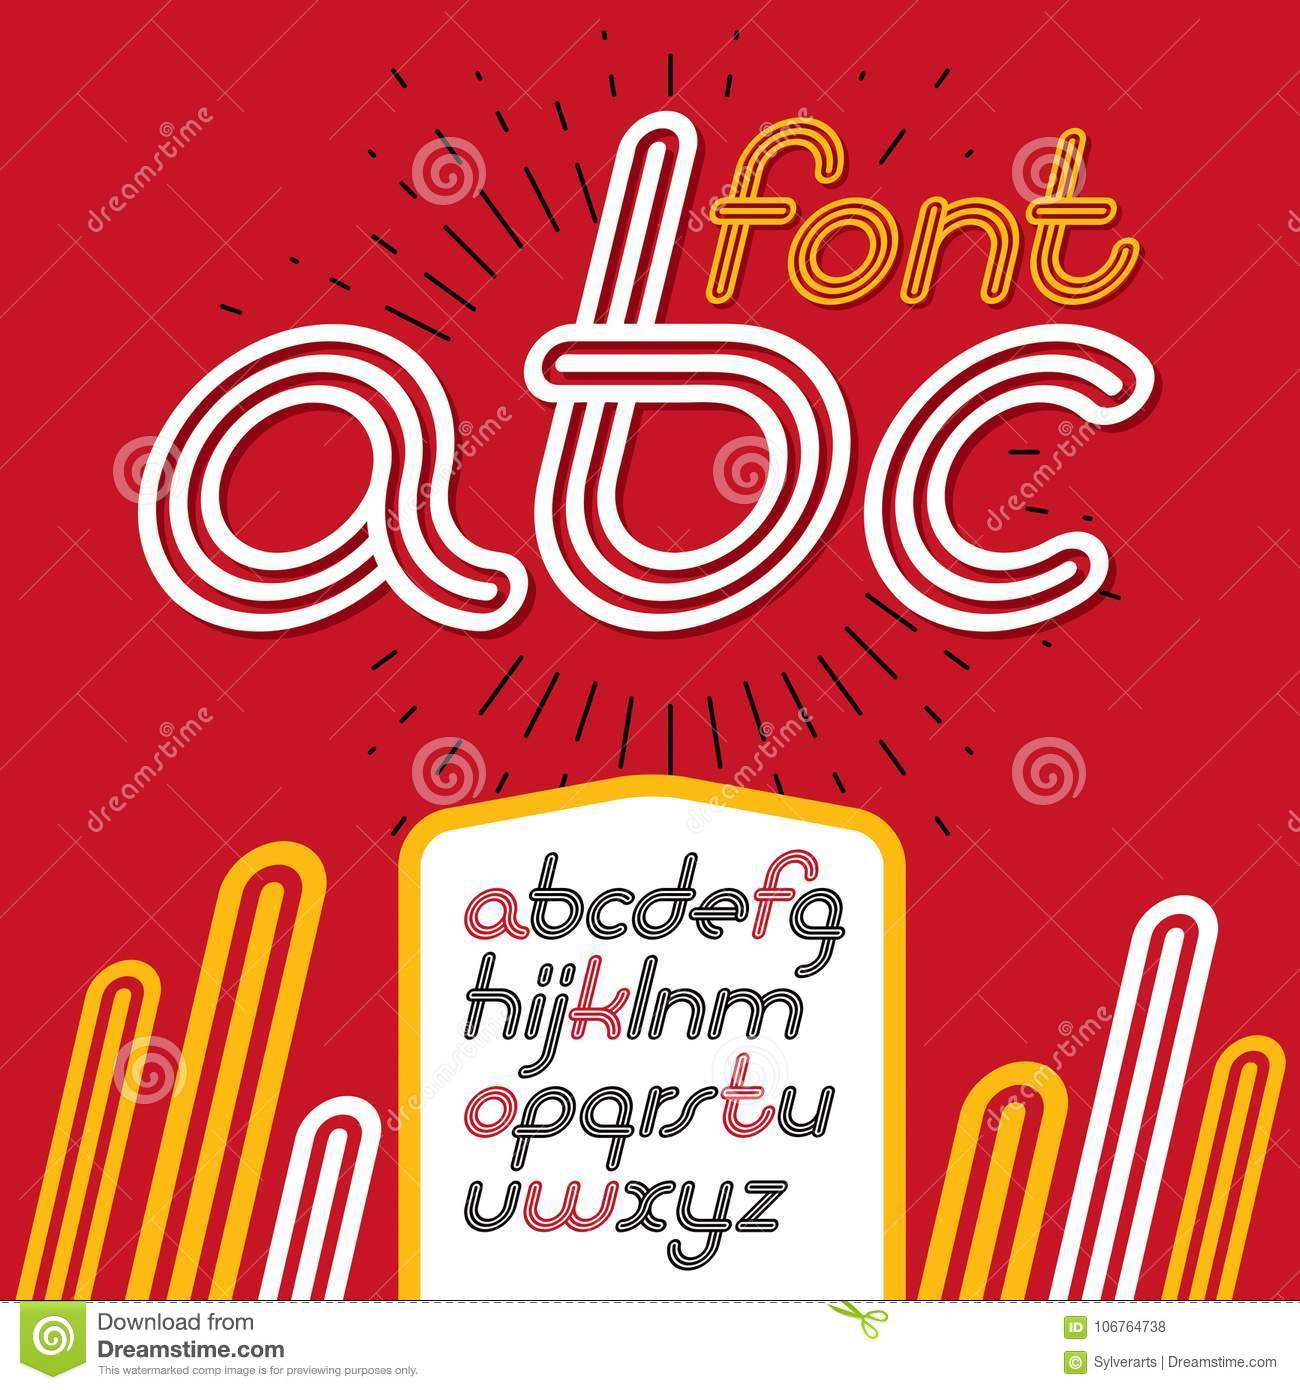 Vector Retro Lowercase English Alphabet Letters Abc Collection Cool Disco Cursive Font Script From A To Z Can Be Used In Poster Art